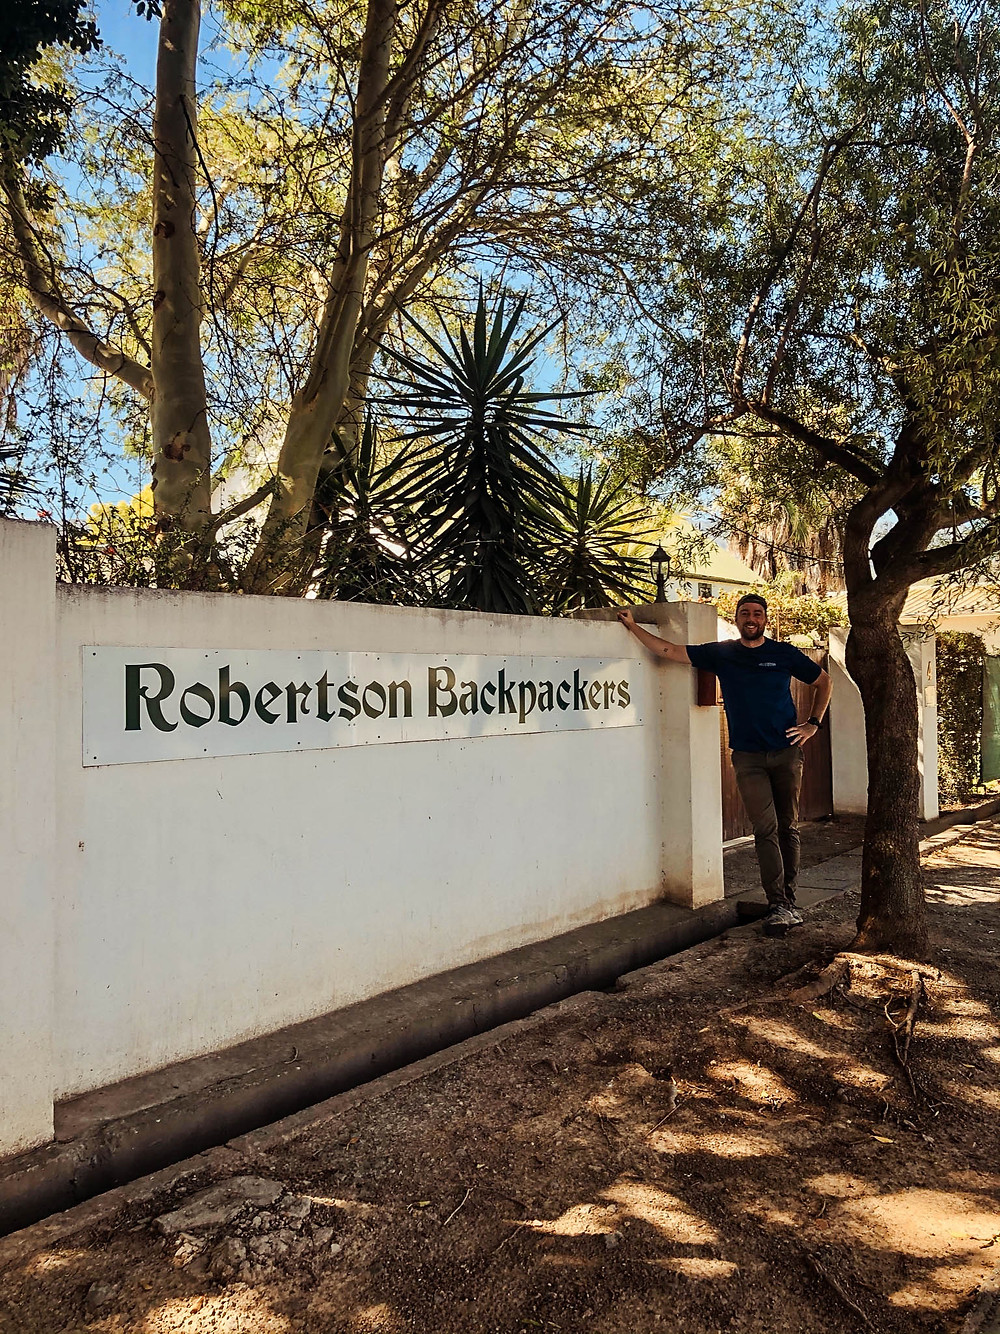 At the entrance to the Robertson Backpackers - great place to stay for a Route 62 visit!